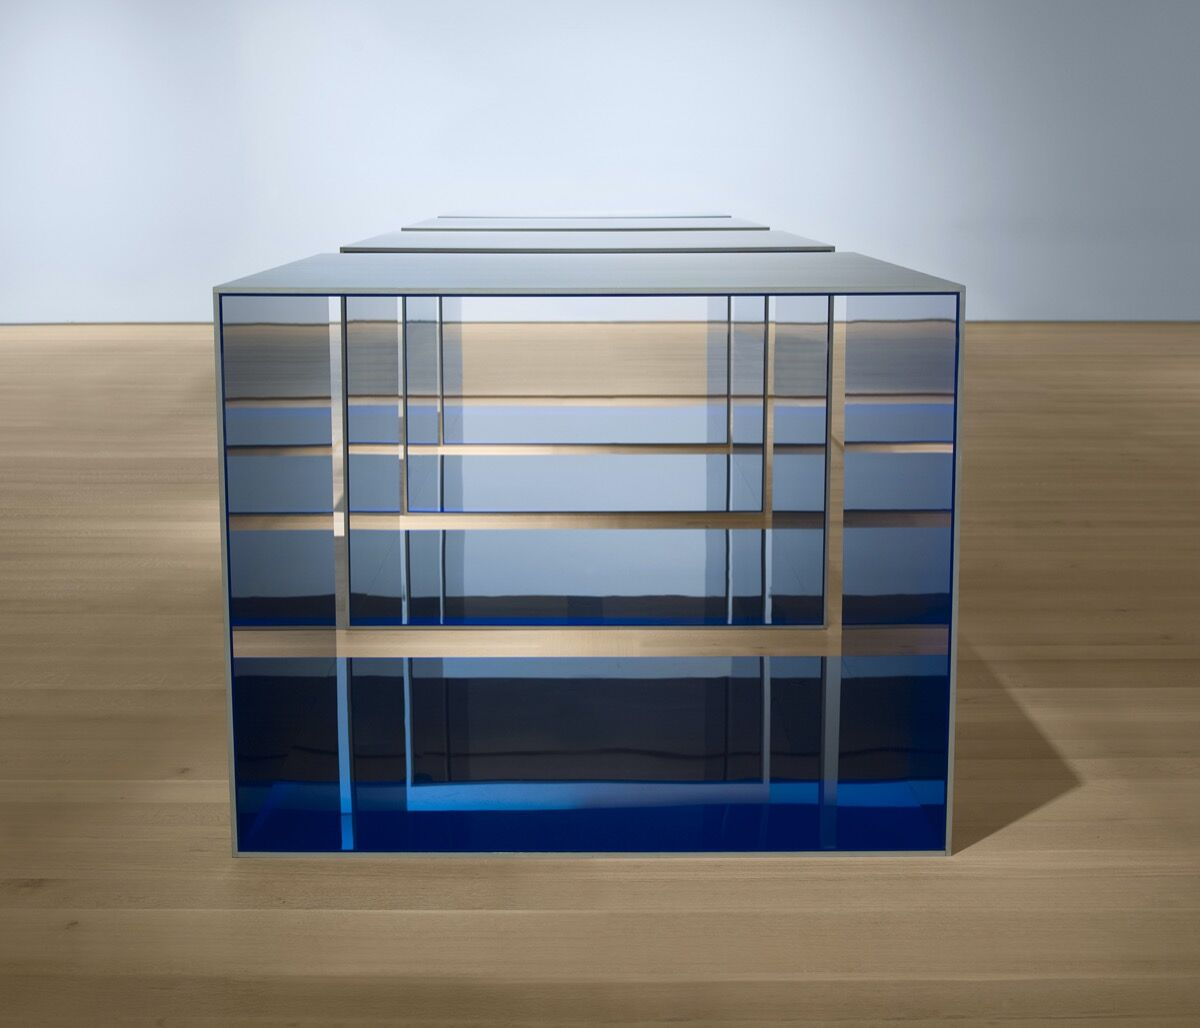 Donald Judd, Untitled, 1969. © 2020 Judd Foundation / Artists Rights Society (ARS), New York. Courtesy of Saint Louis Art Museum, and The Museum of Modern Art, New York.